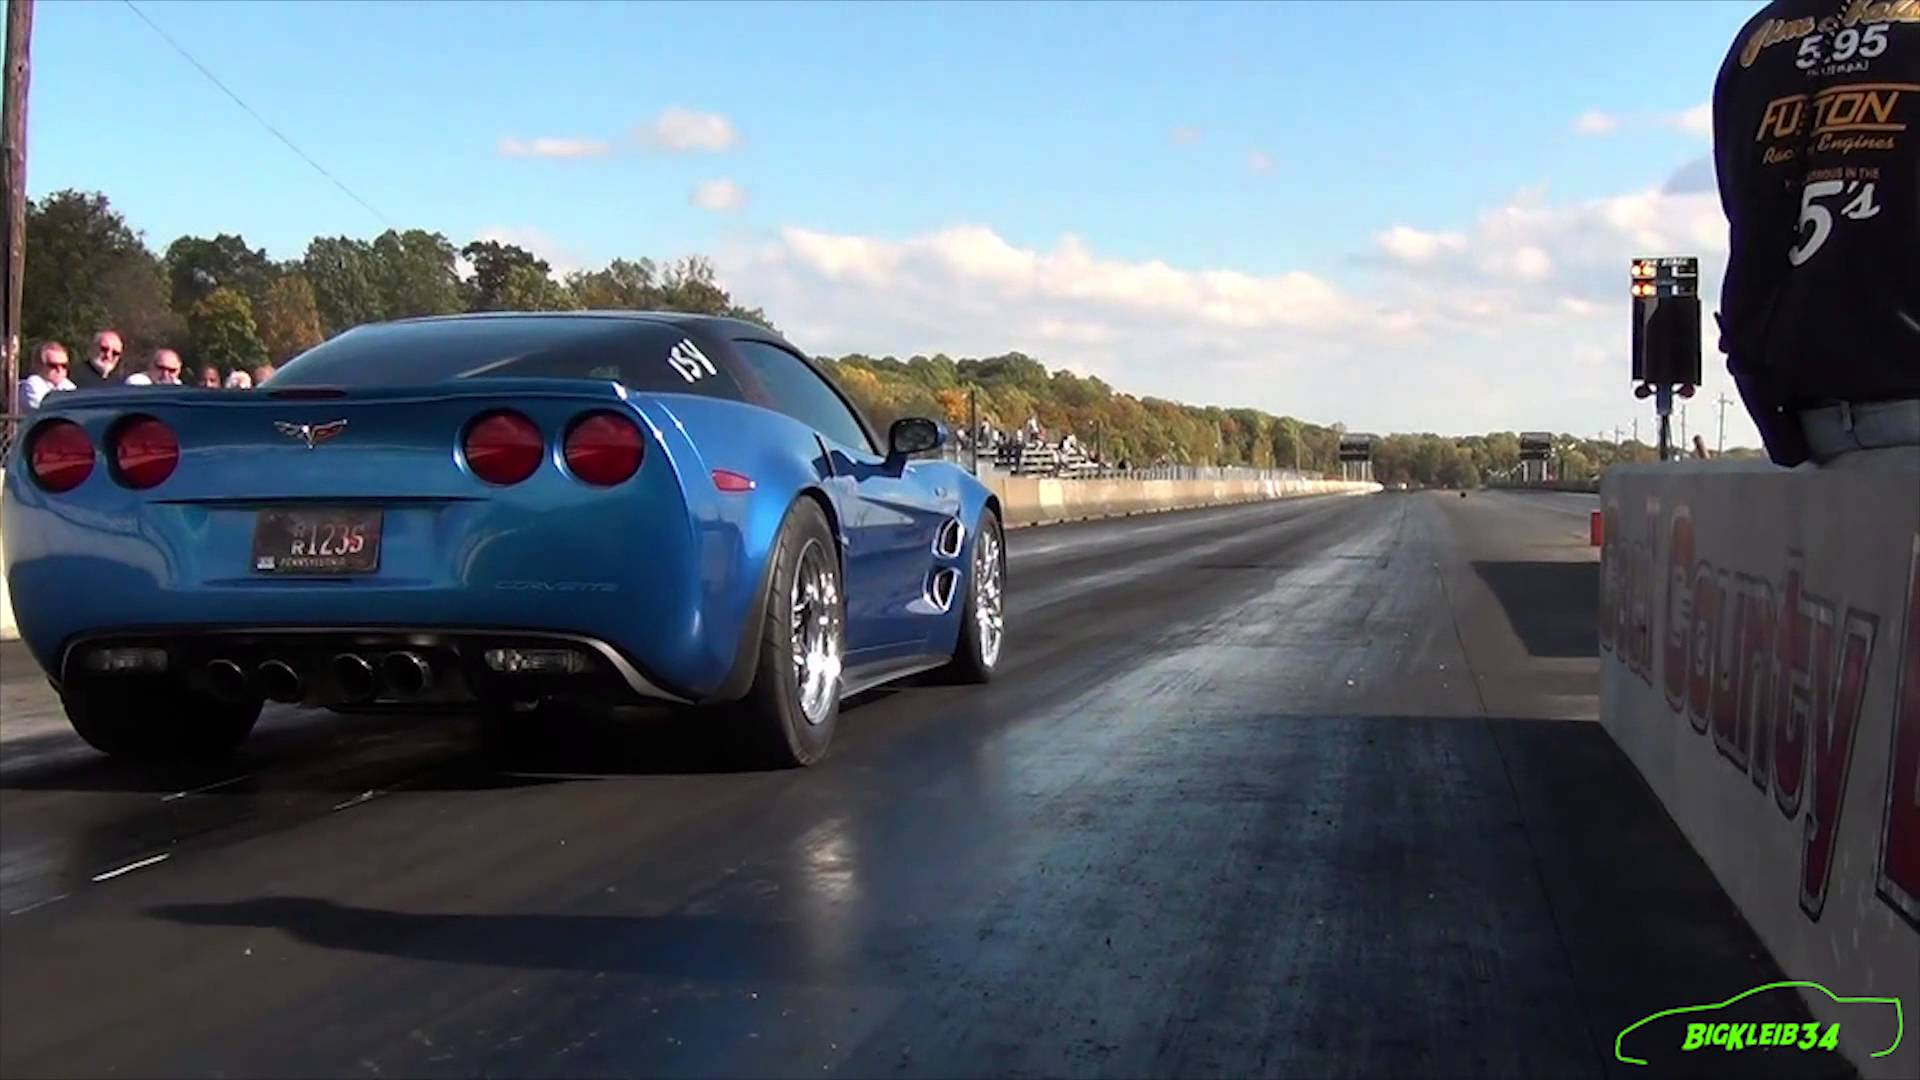 Cammed E85 Corvette Zr1 Shows Why Corvettes Are The Boss